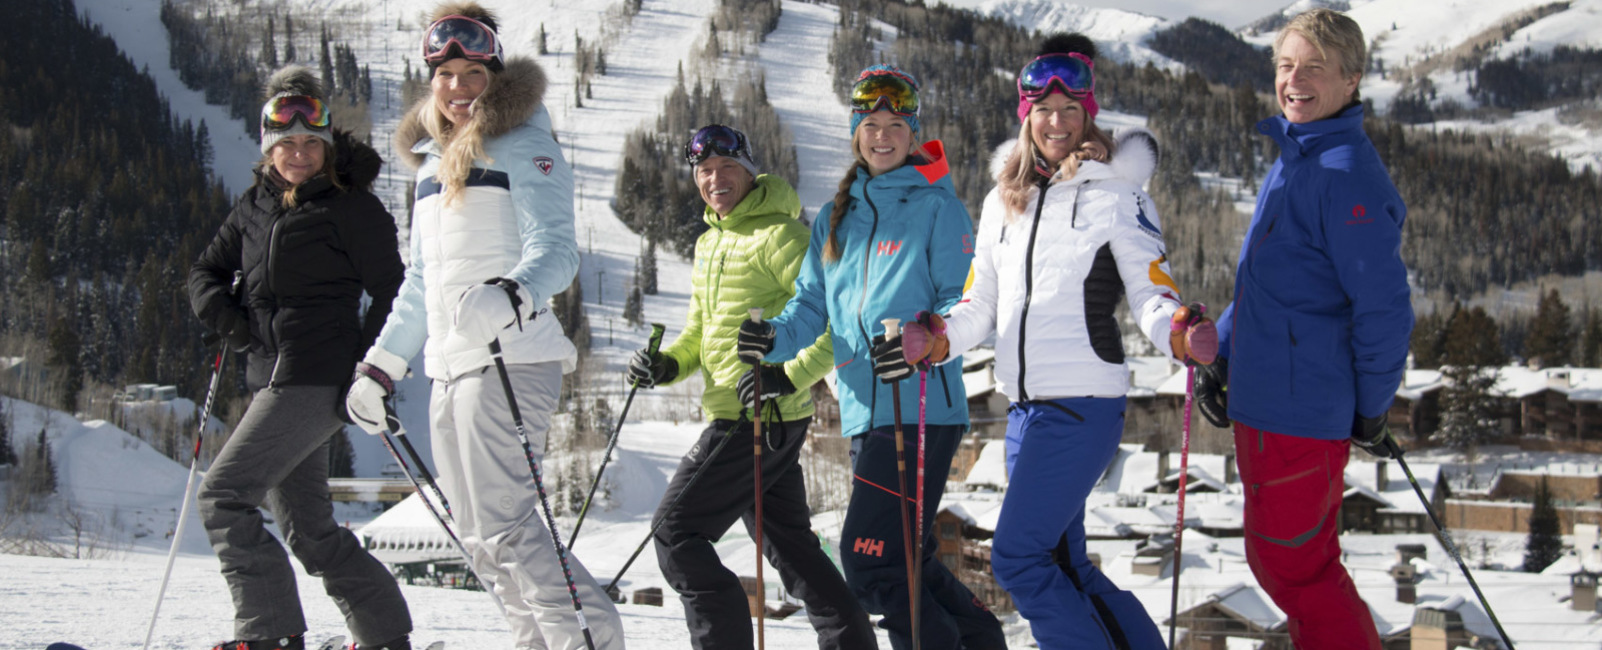 Experience of a Lifetime: Skiing With a Champion at Deer Valley Resort